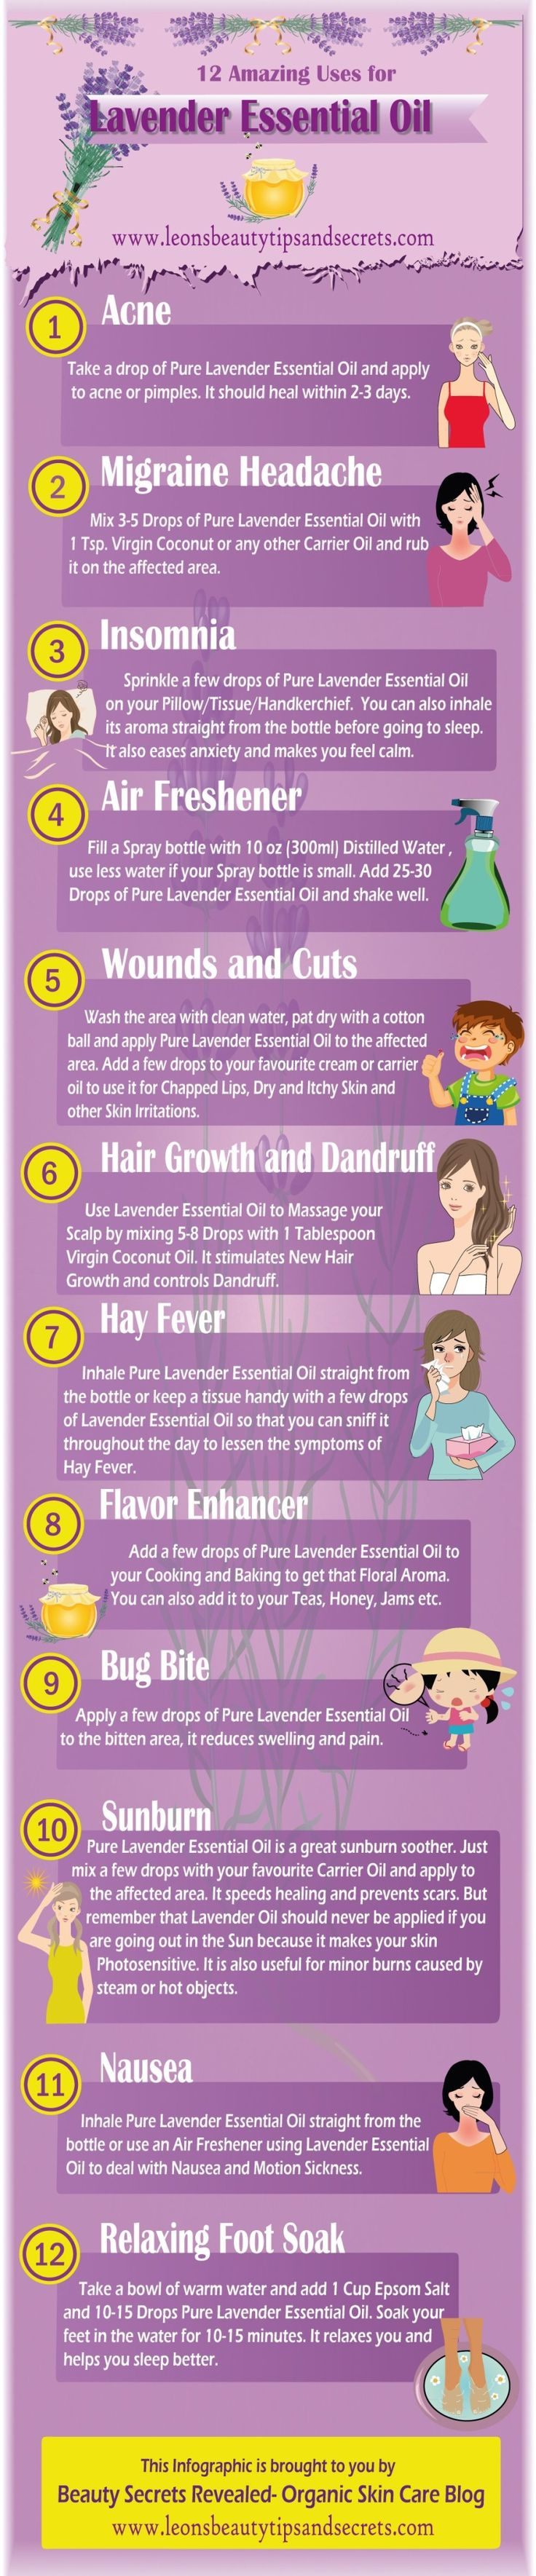 12 Amazing Uses For Lavender Essential Oil- Infographic